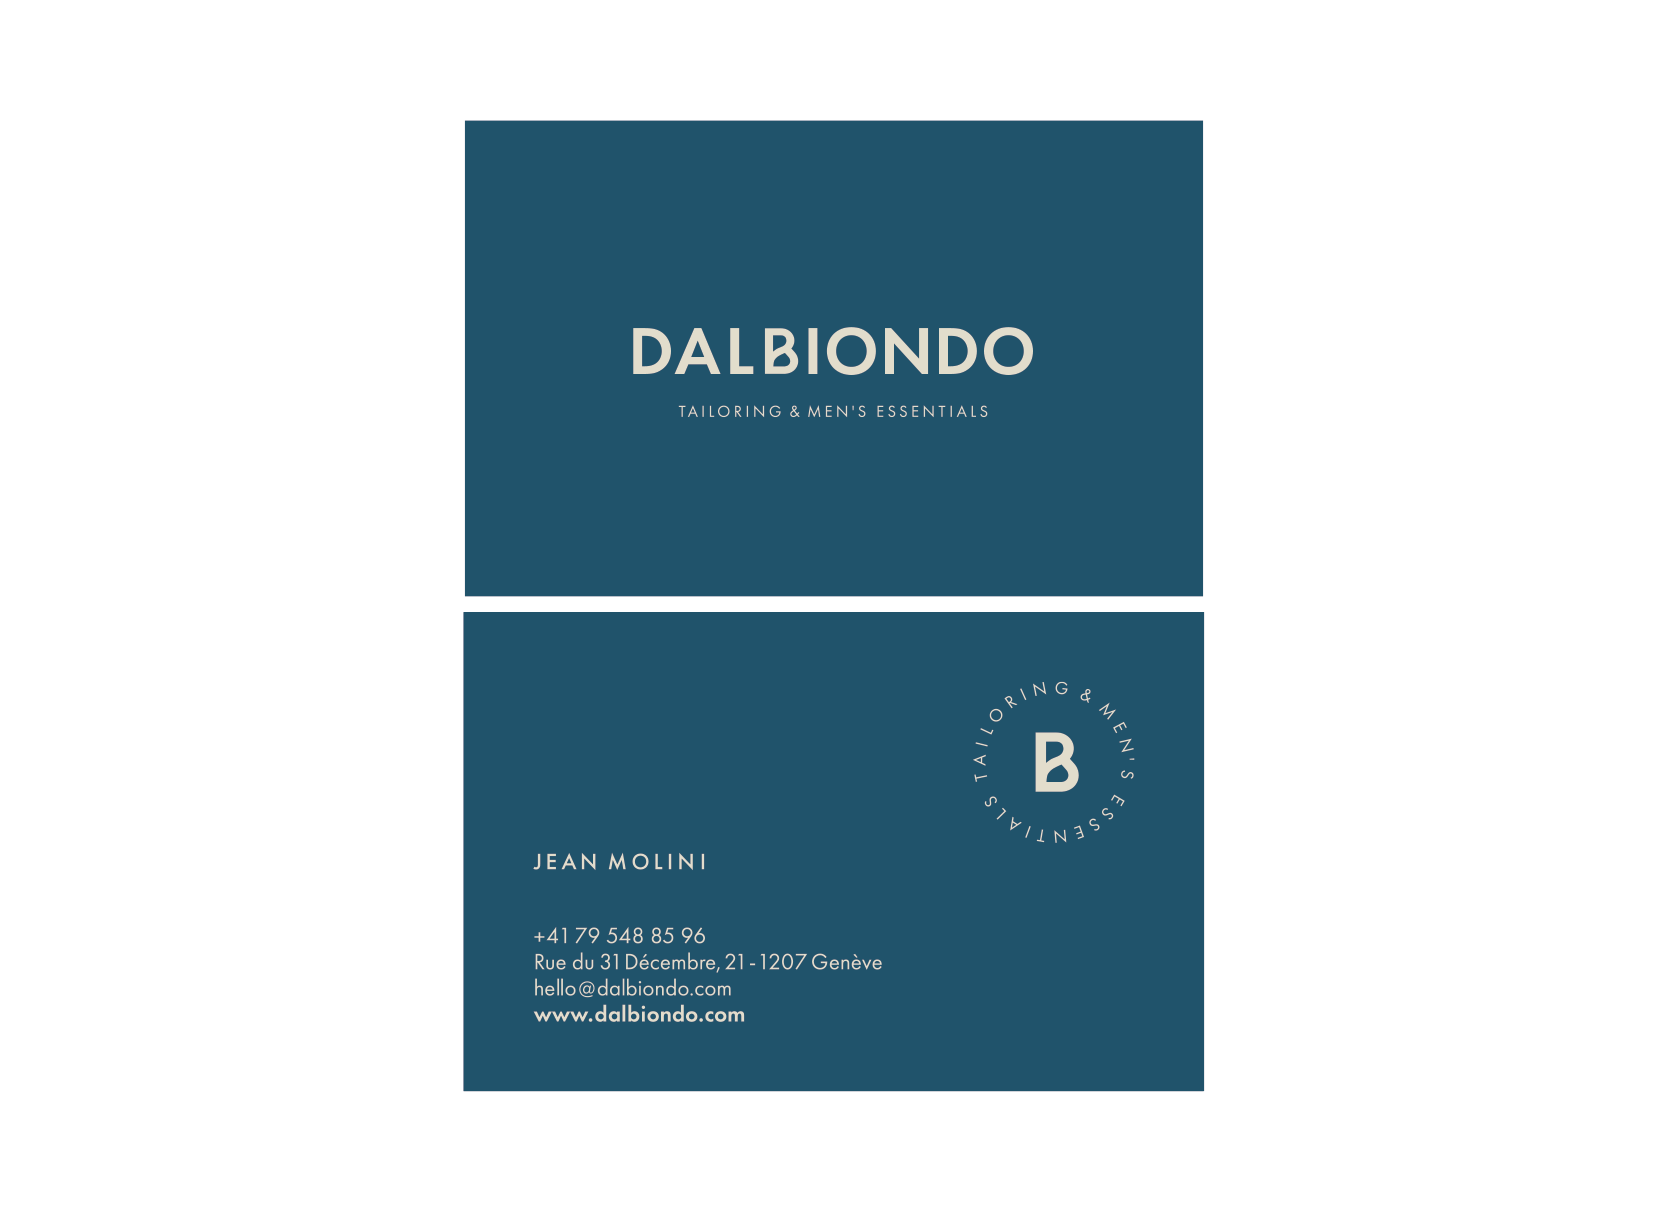 BS_Projet-Dalbiondo2.png